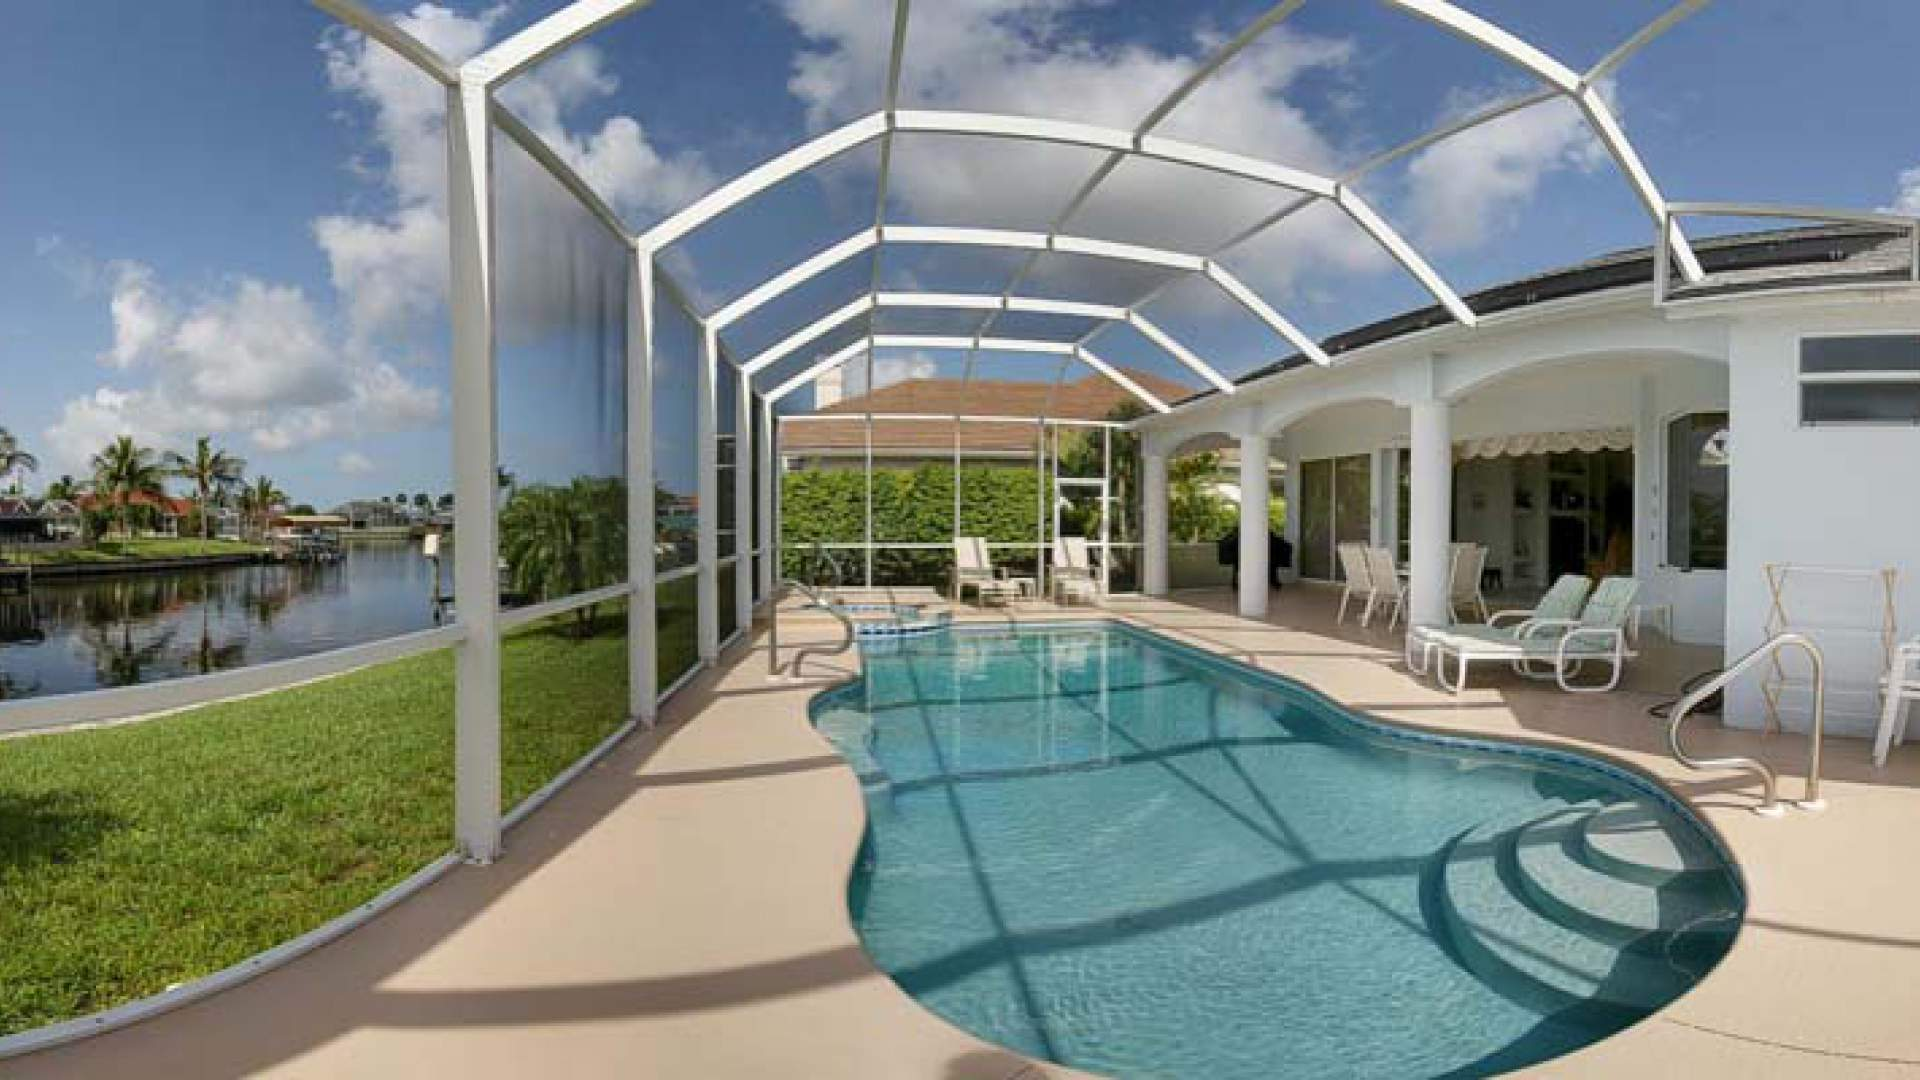 Pool and spa can be solar heated